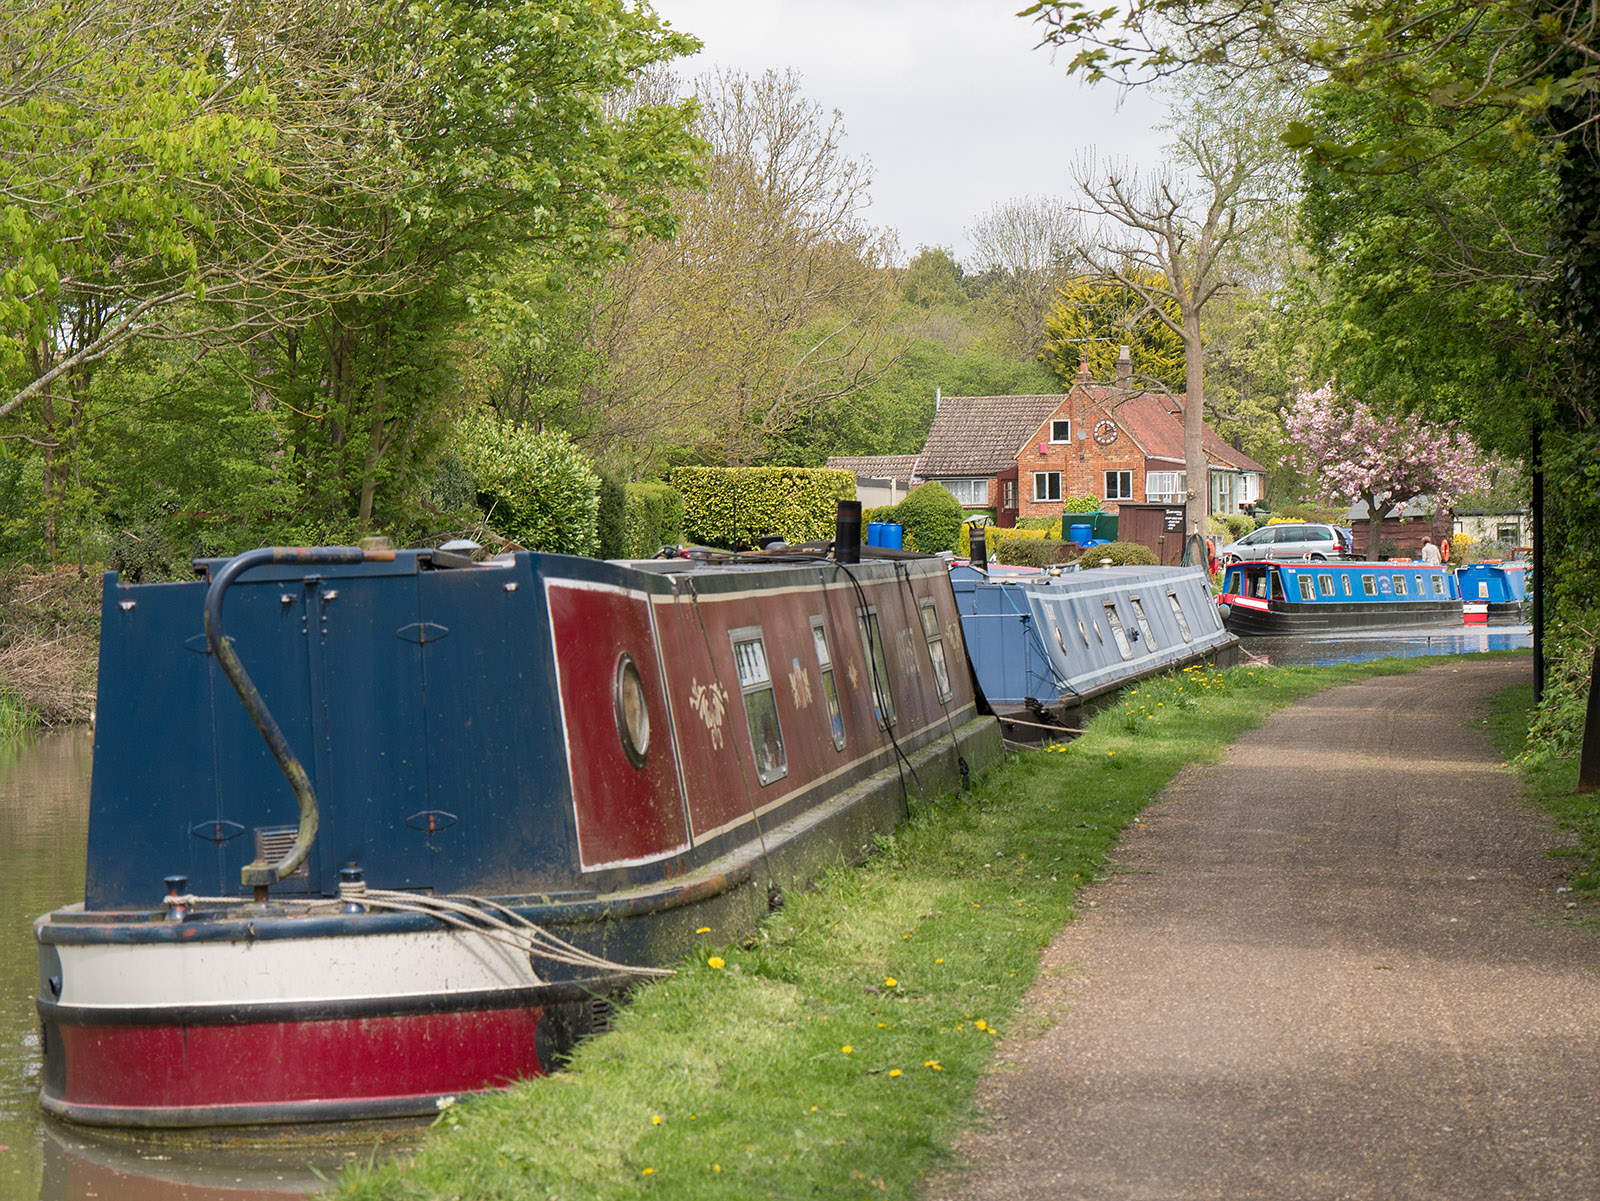 Heading towards the first bend and te canal boat hire company